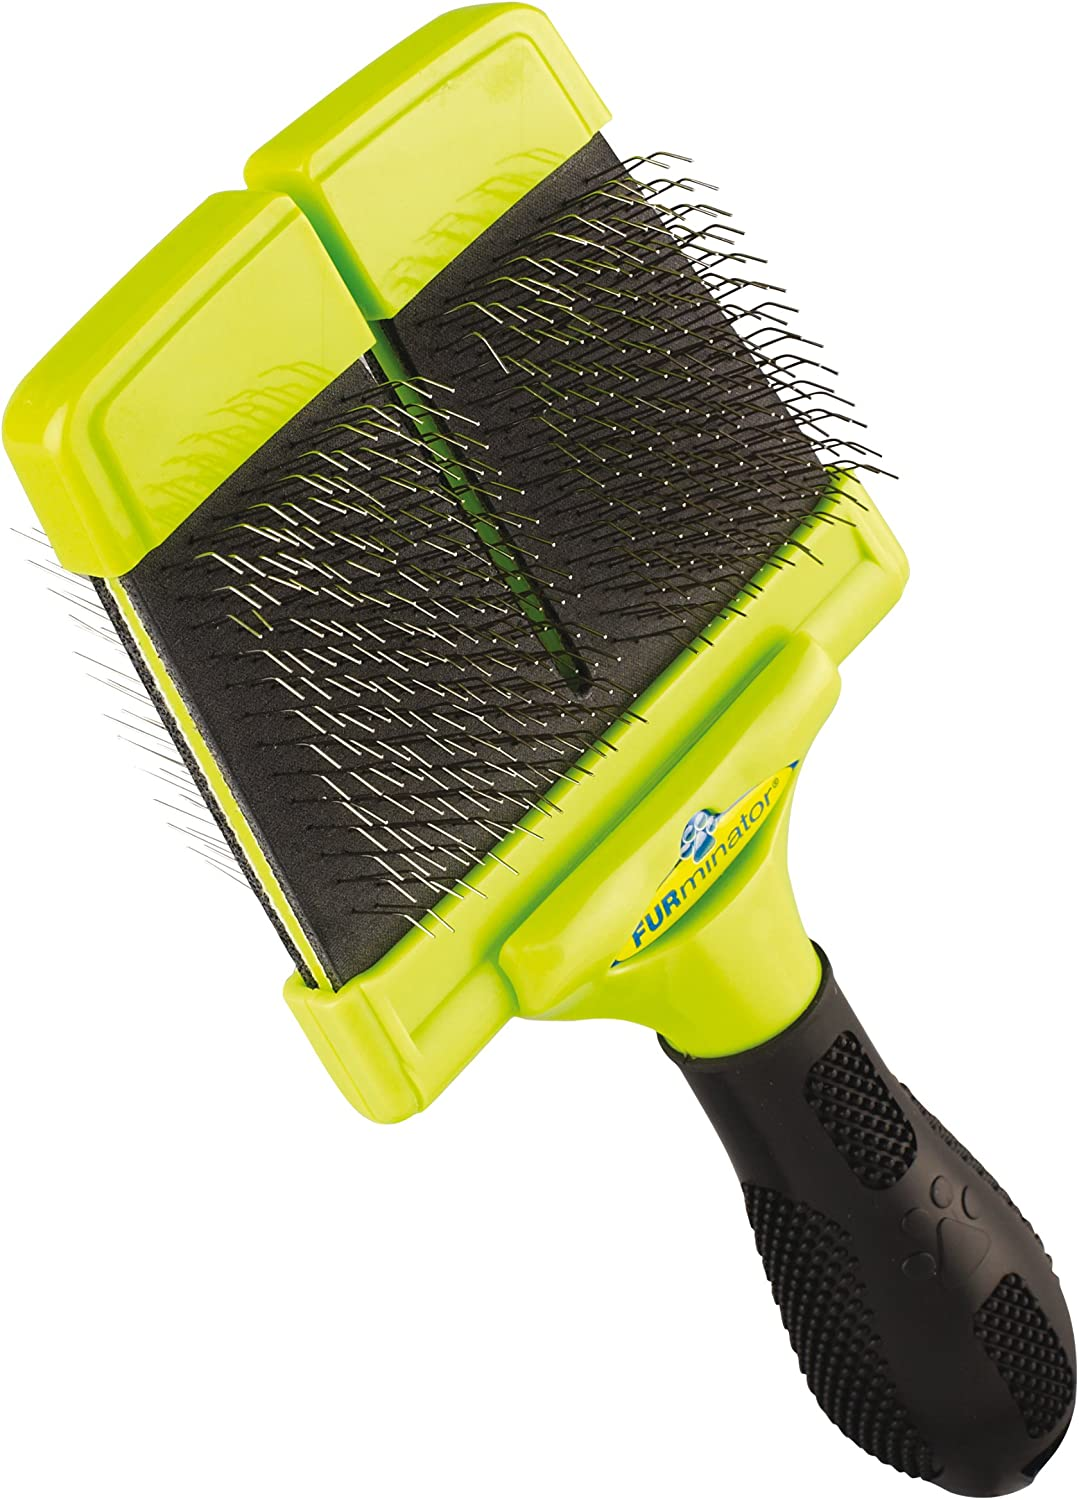 FURminator Slicker Brush with Hard Bristles for Dogs Large